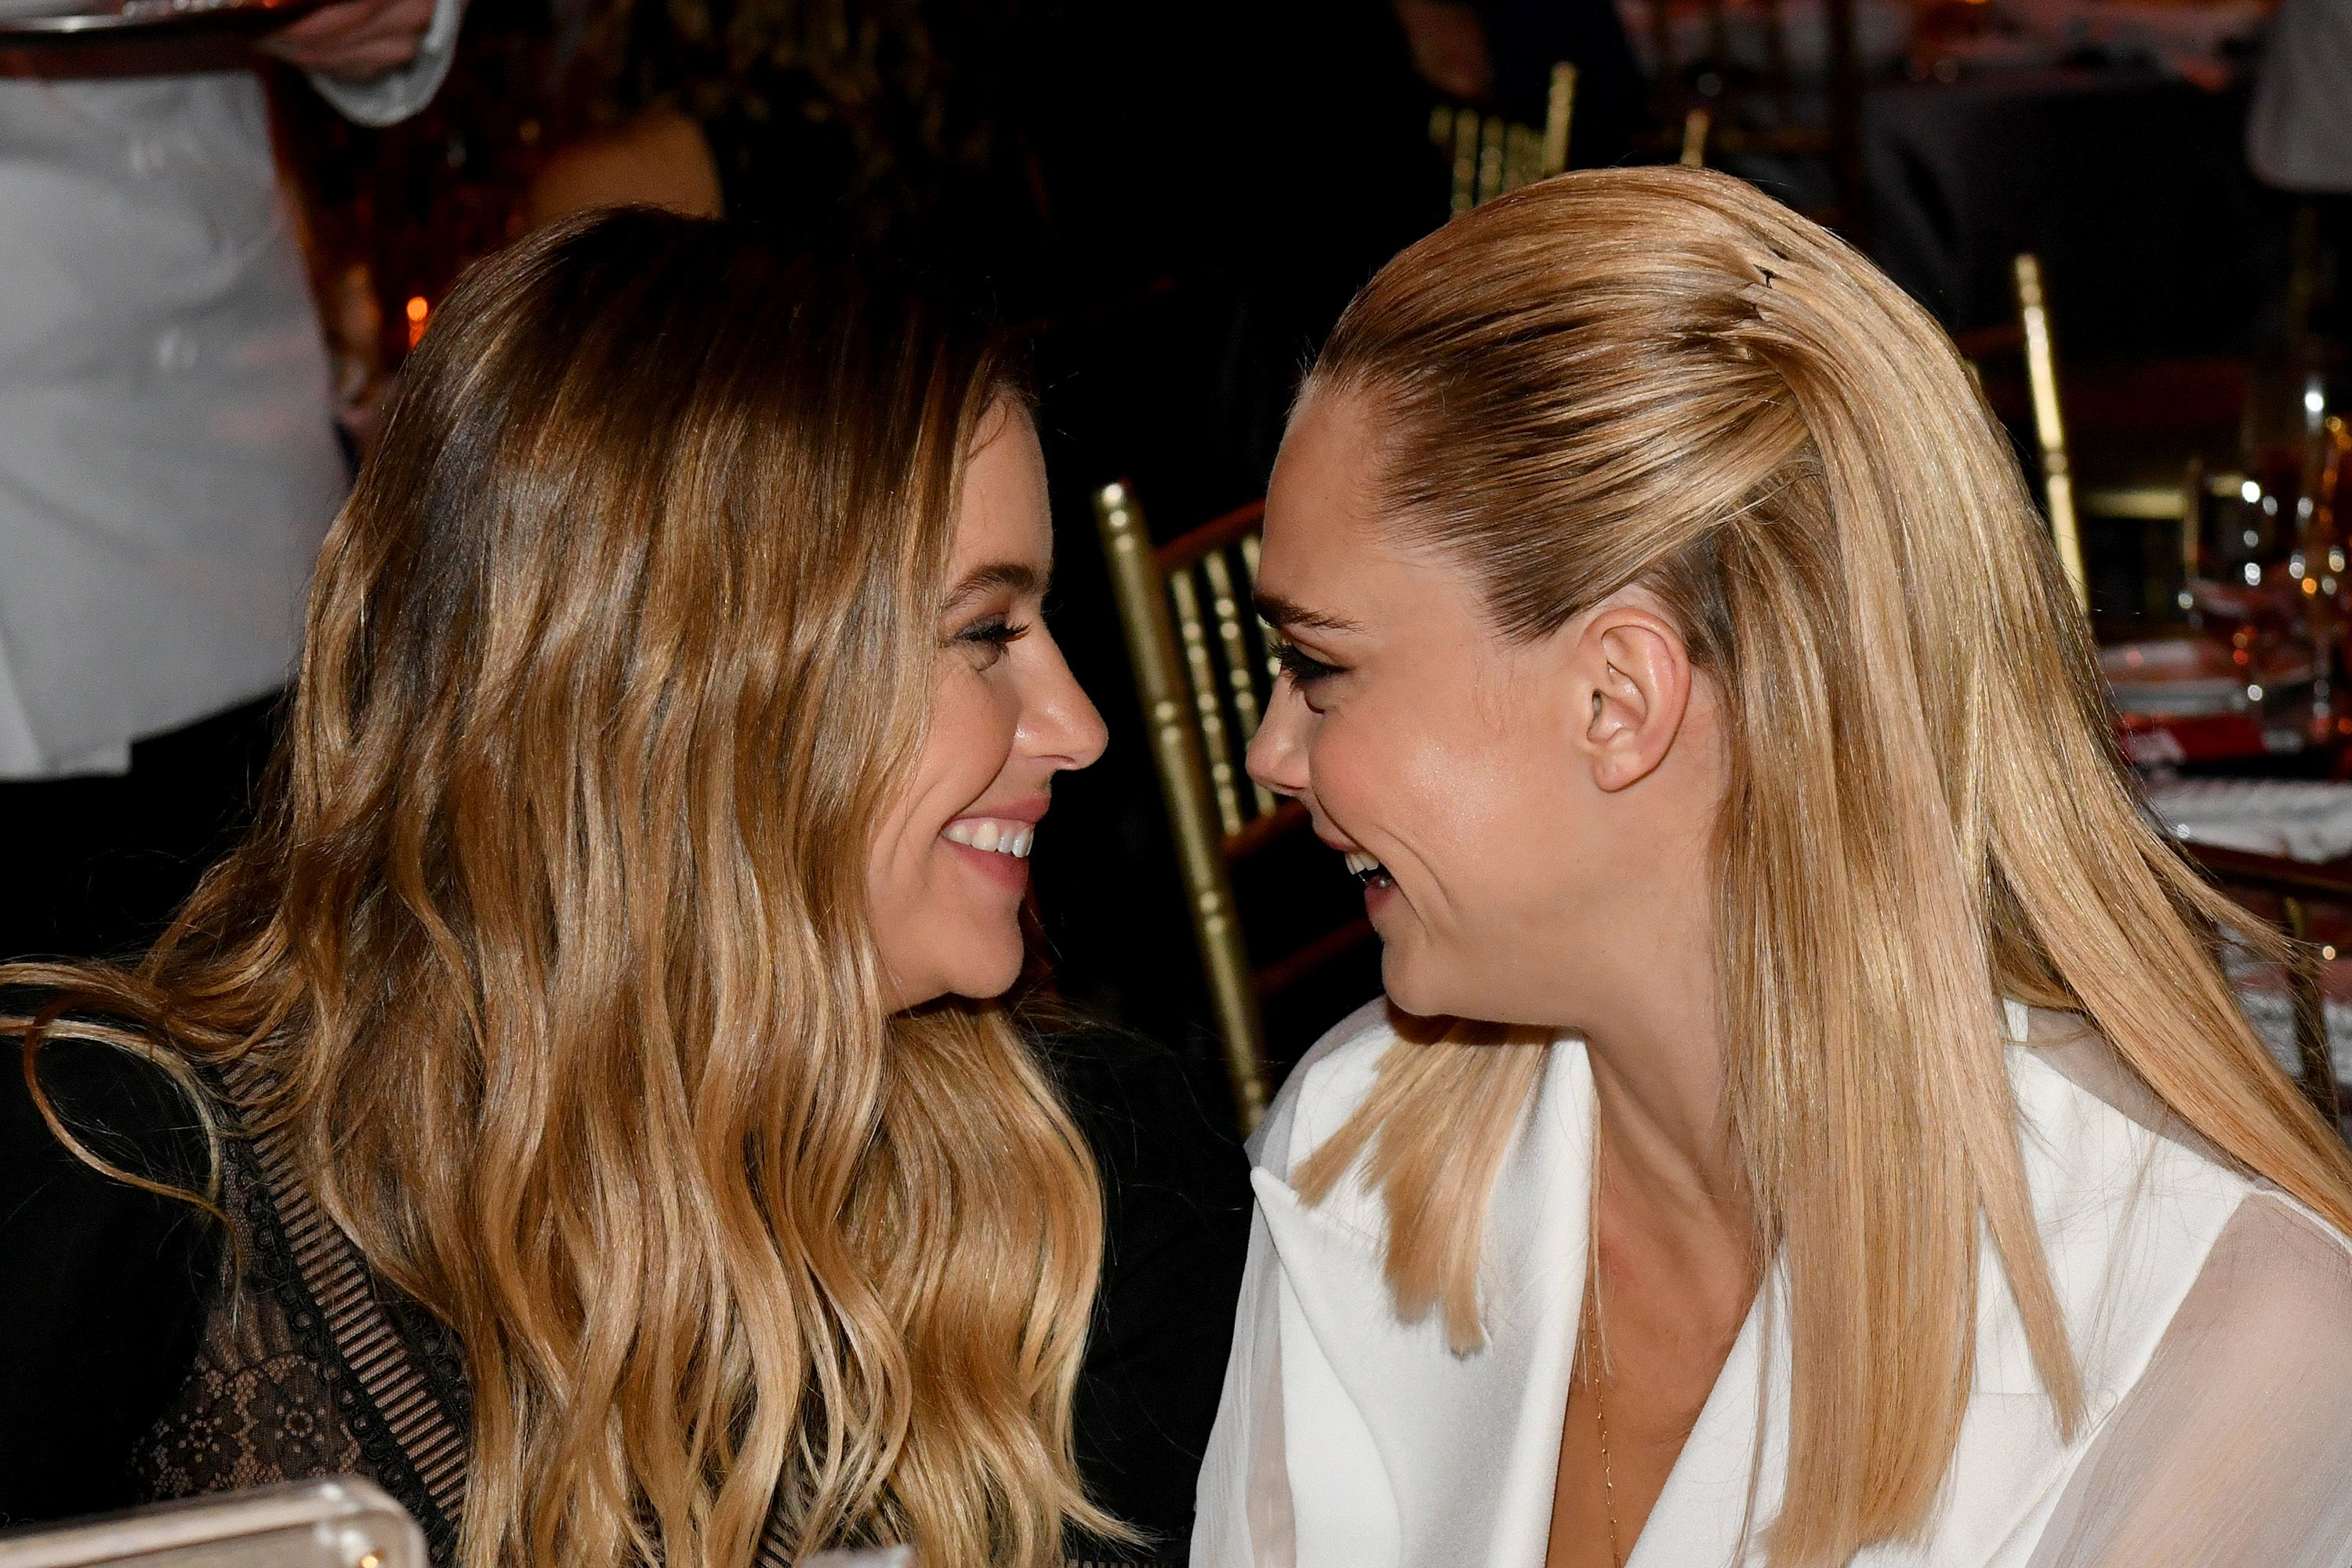 Cara Delevingne and Ashley Benson are a married couple now?